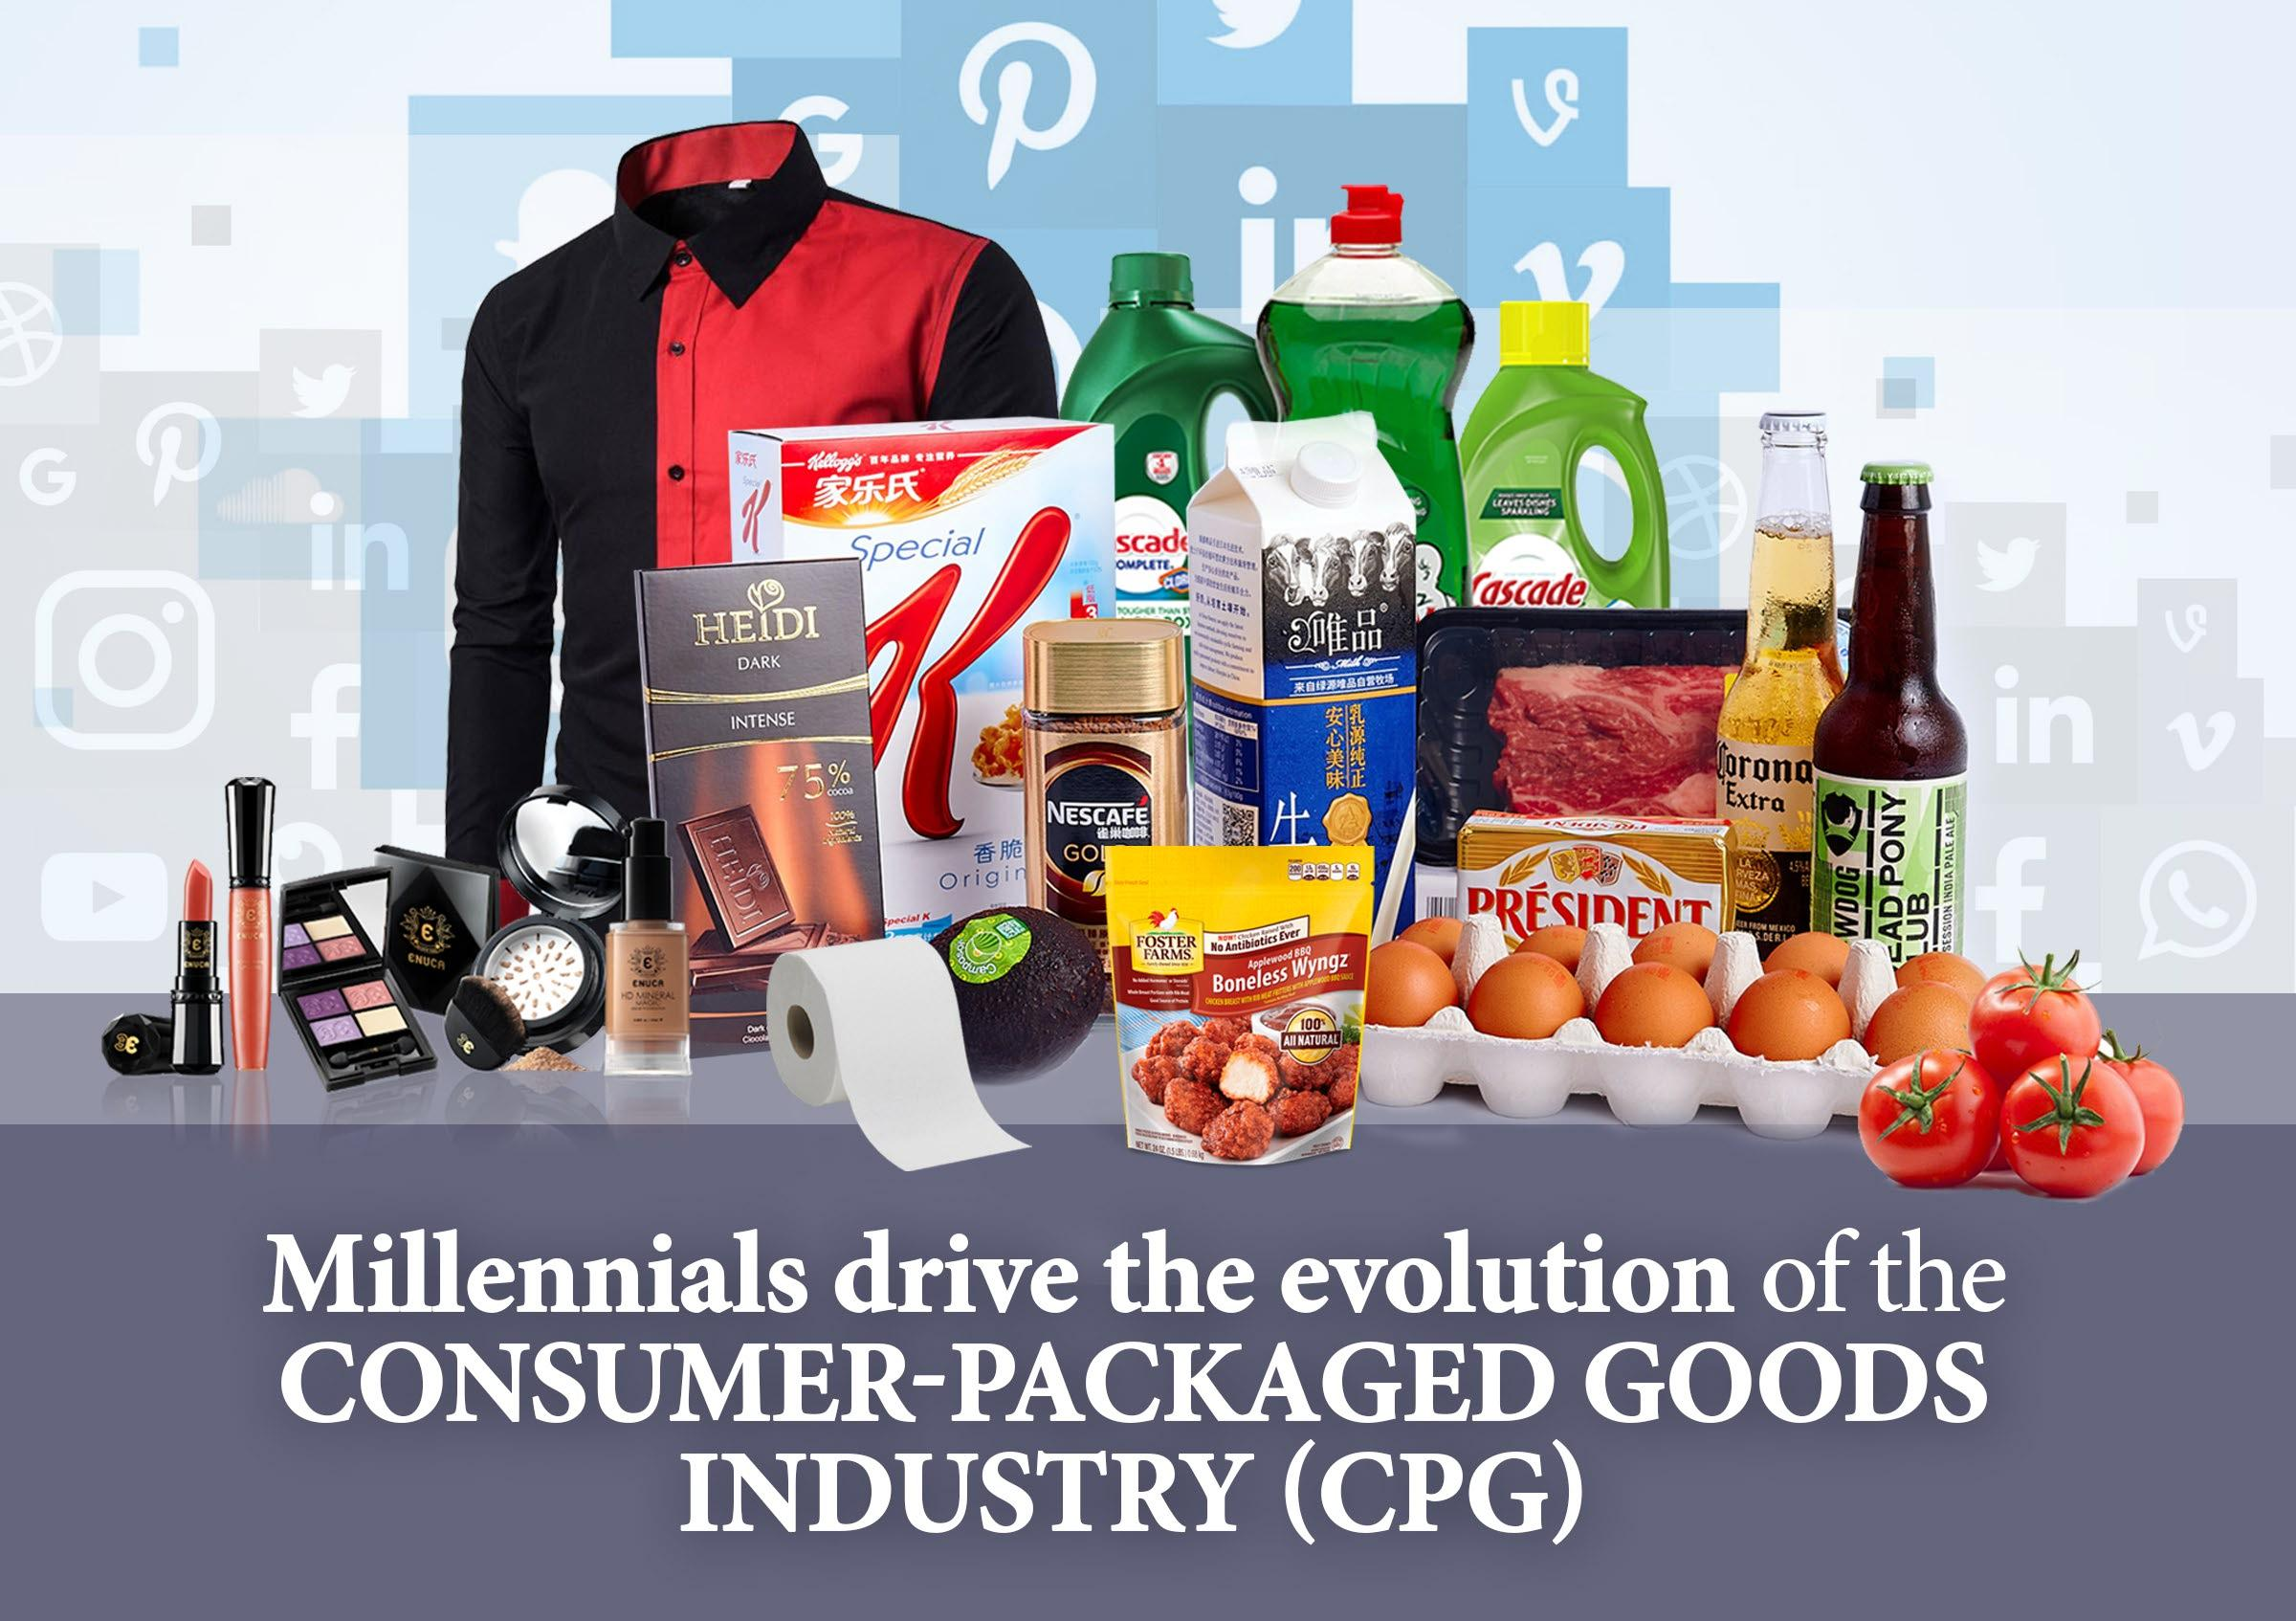 Millennials drive the evolution of the Consumer-Packaged Goods Industry (CPG)